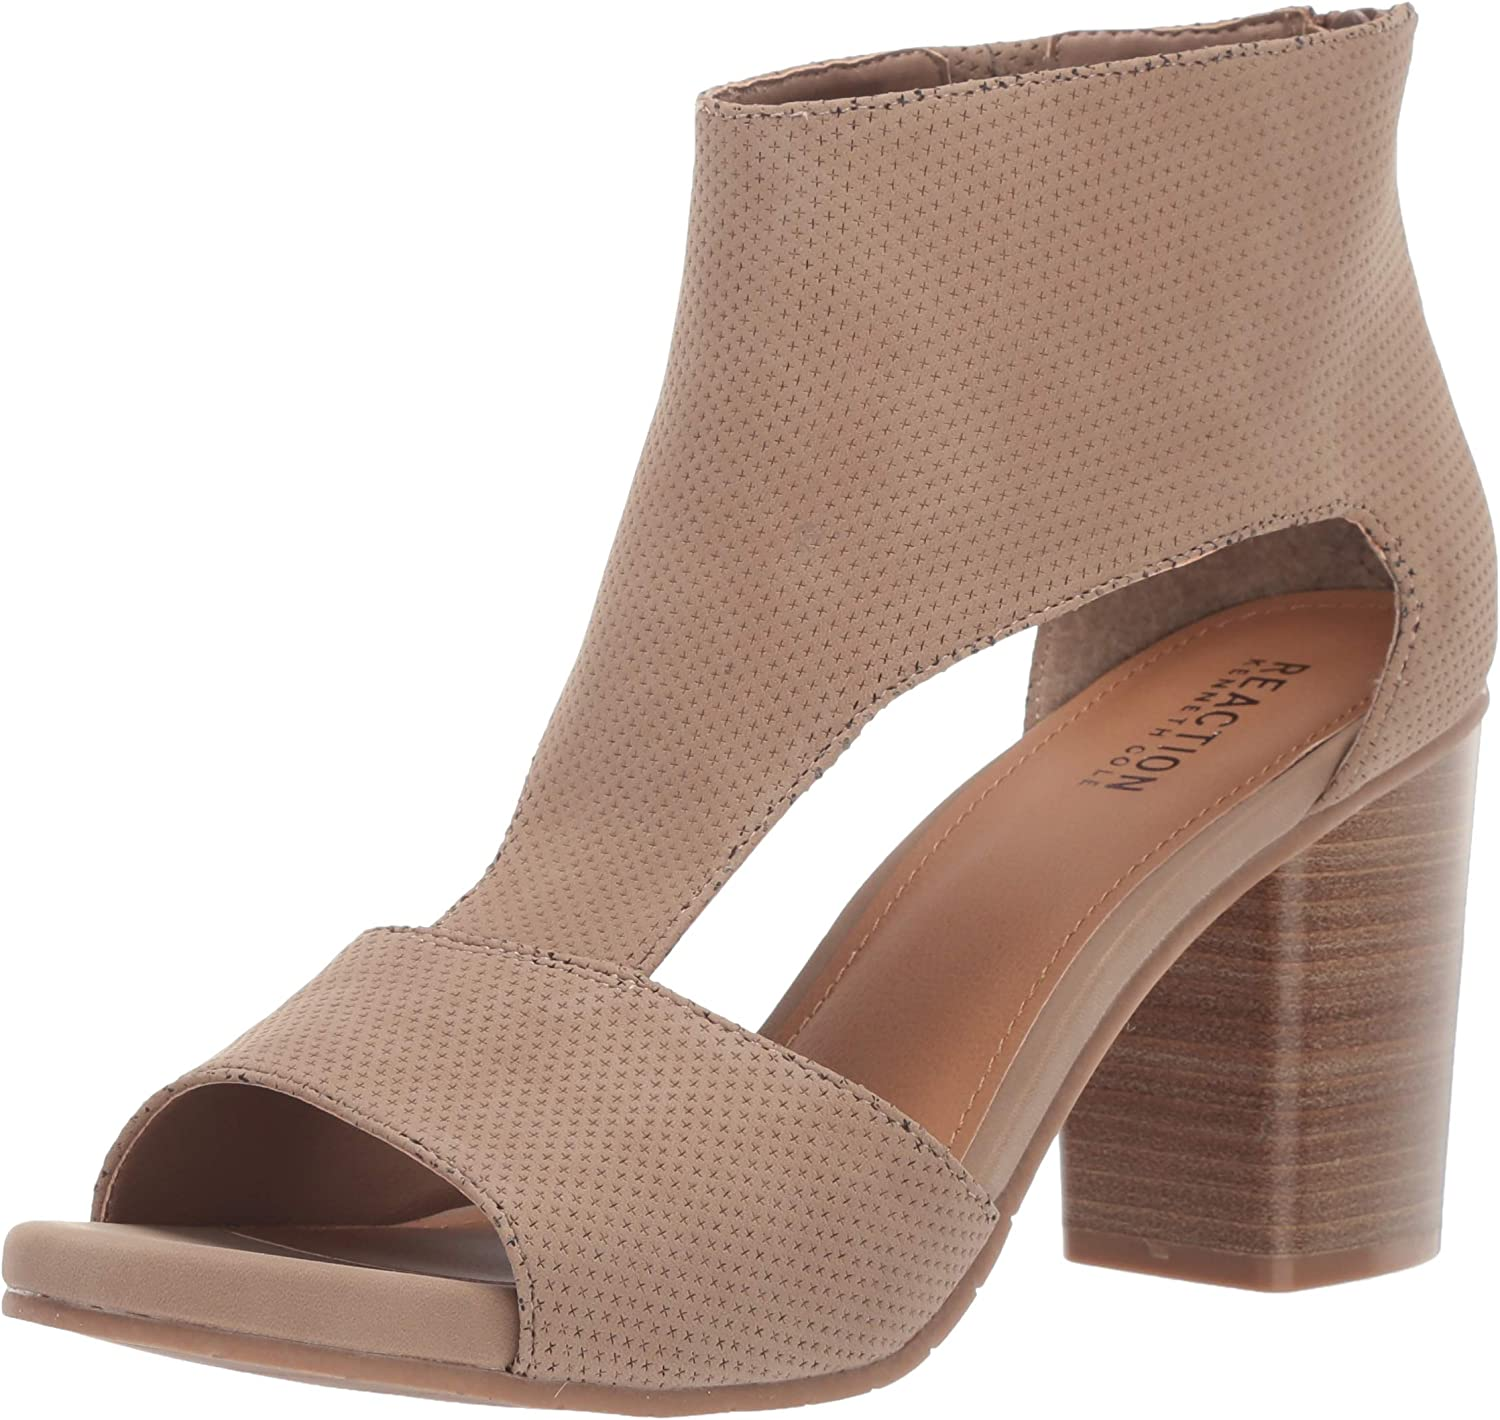 Kenneth Cole REACTION Womens Hit T-Strap Heeled Bootie Ankle Boot